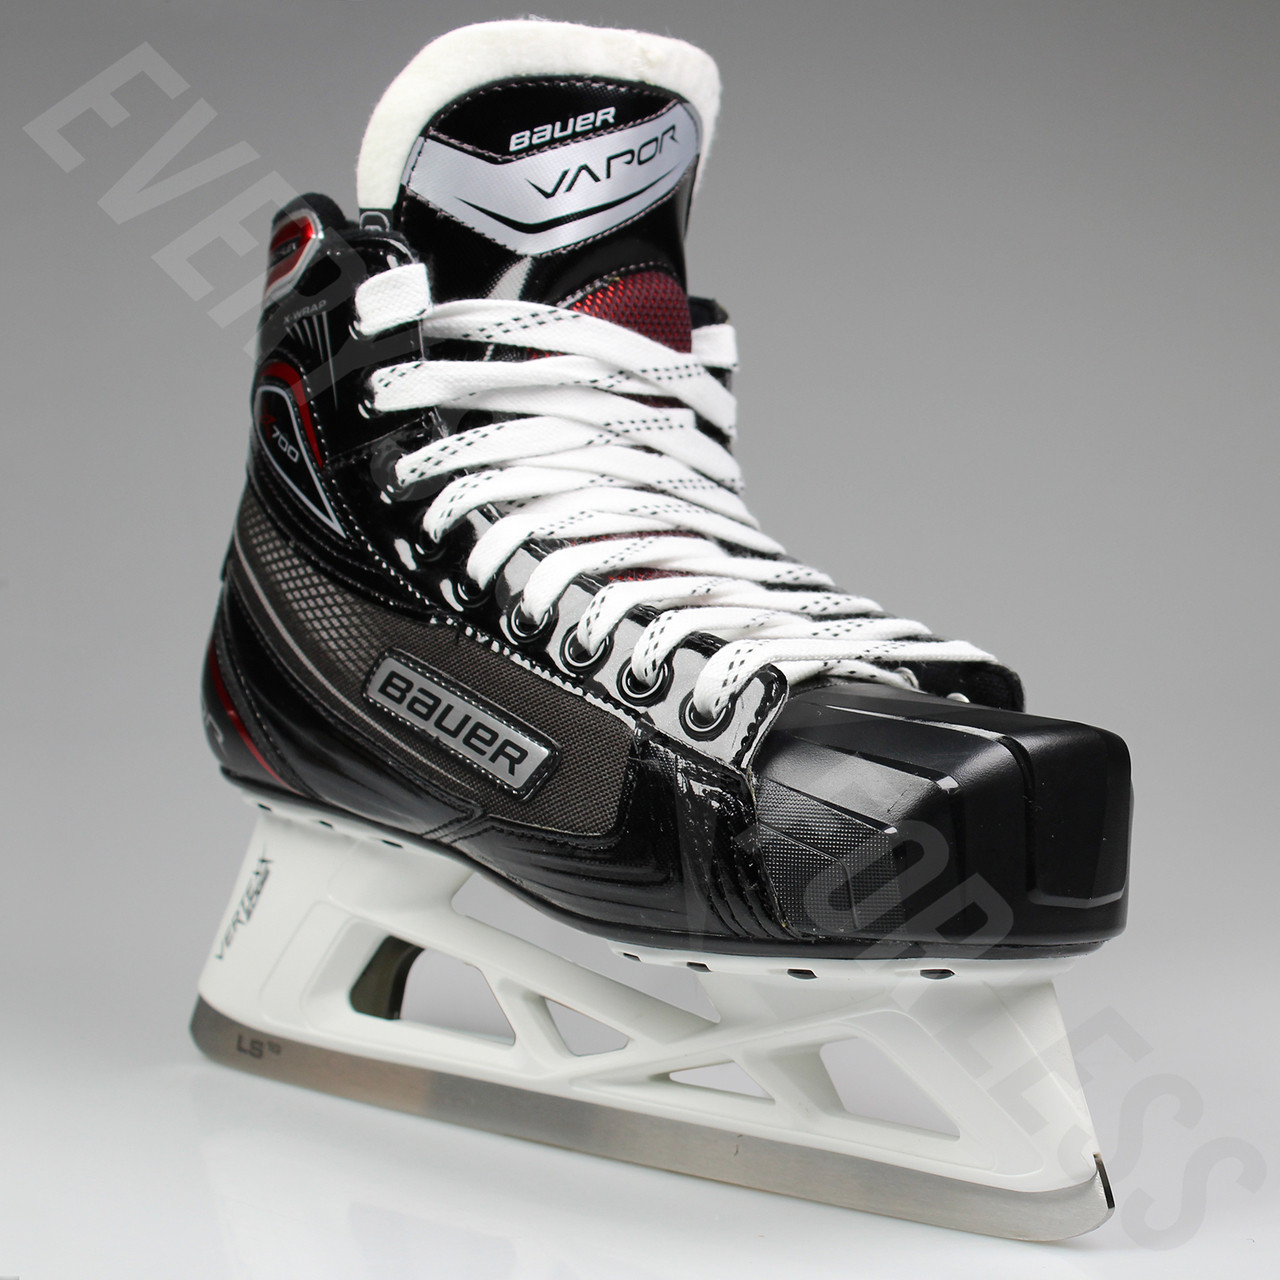 3f34650b54e ... Bauer S17 Vapor X700 Senior Ice Hockey Goalie Skates ...